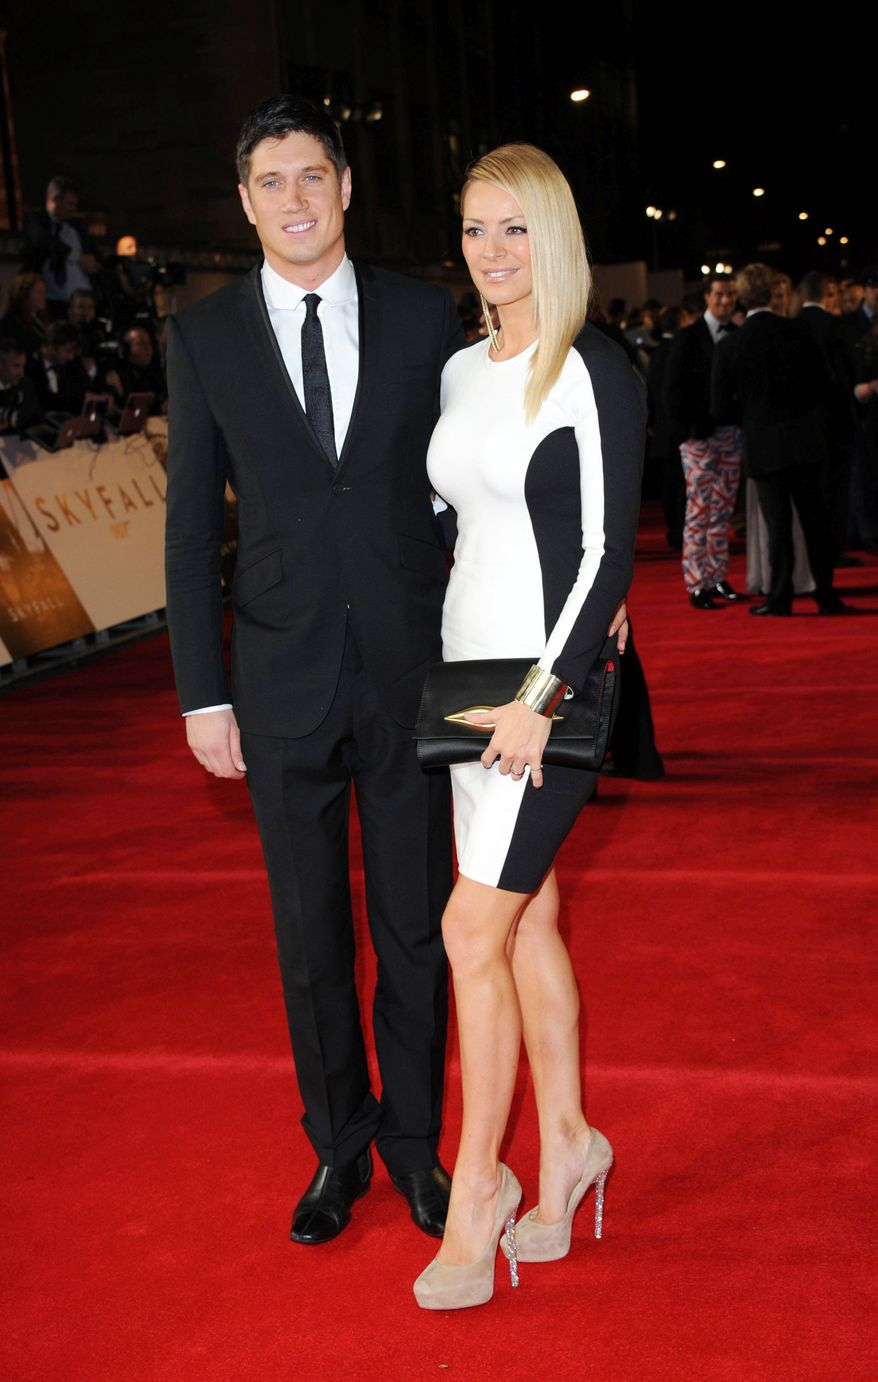 """TV presenters Vernon Kay, left, and his wife Tess Daly pose at the world premiere of """"Skyfall"""" on Tuesday, Oct. 23, 2012 in London.  (Photo by Stewart Wilson/Invision/AP)"""